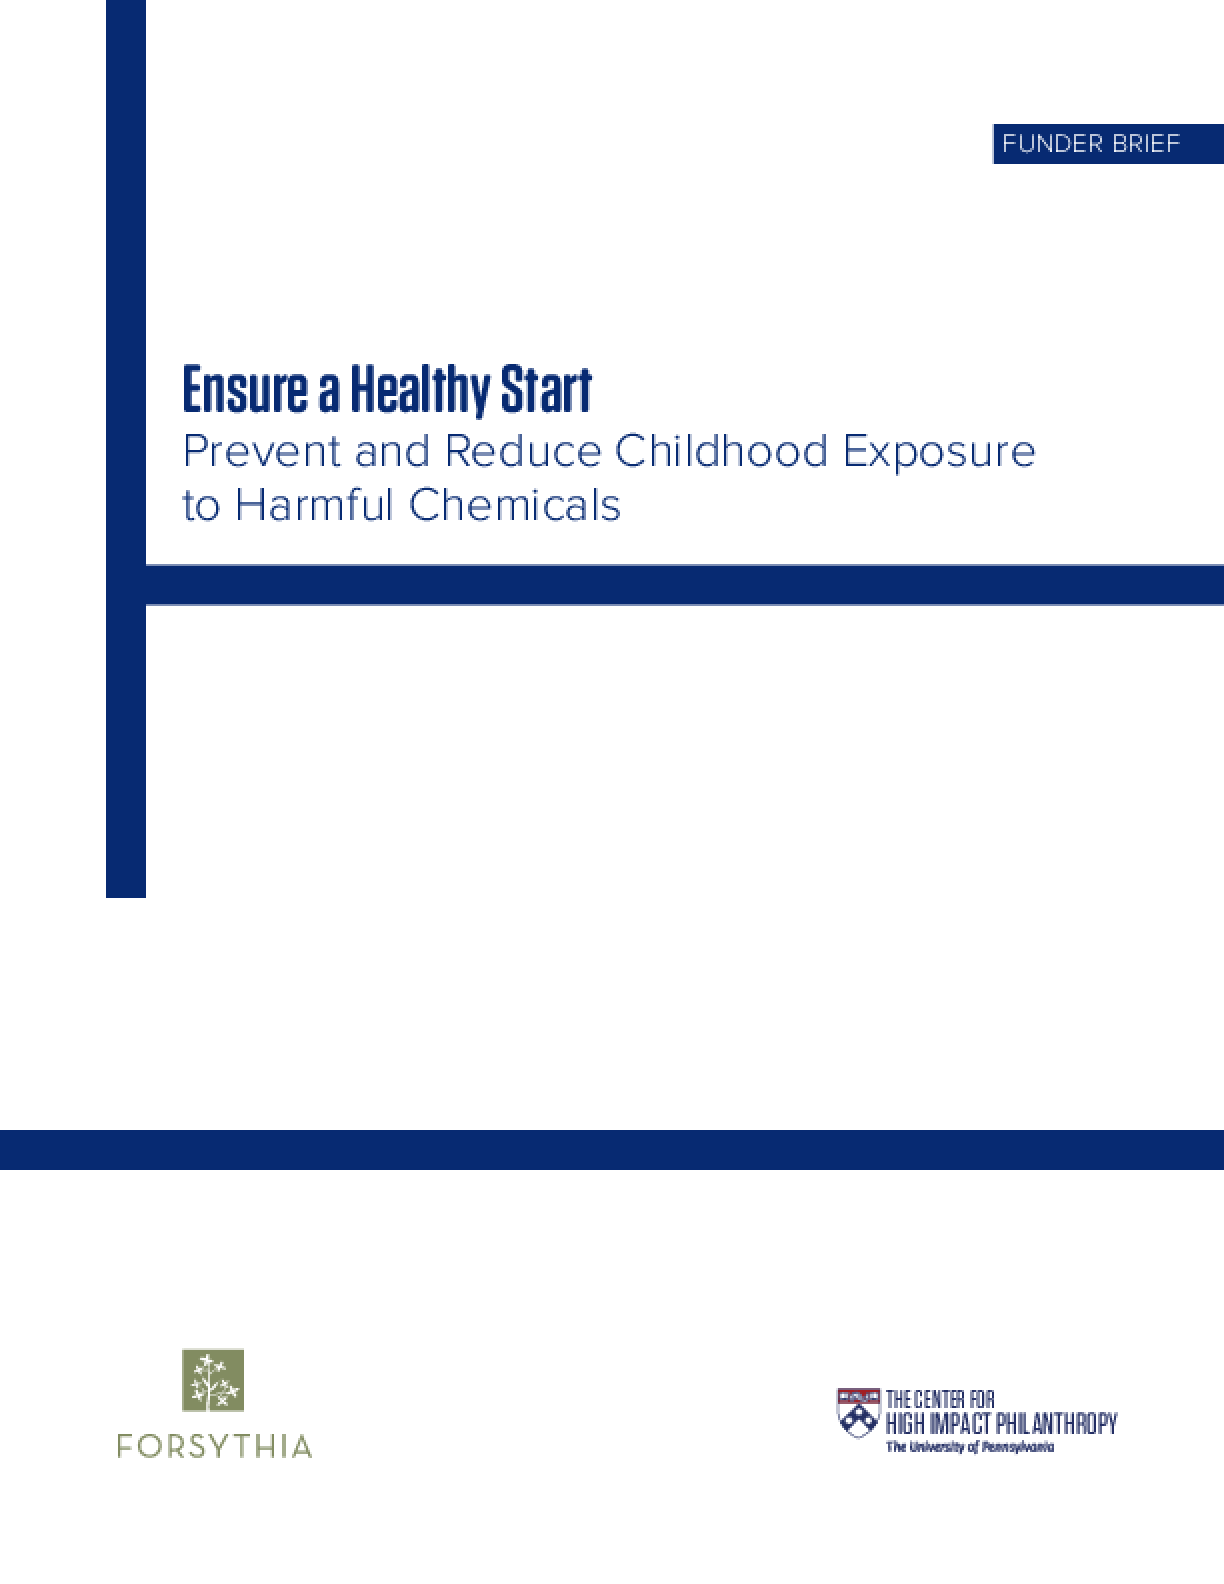 Ensure a Healthy Start: Prevent and Reduce Childhood Exposure to Harmful Chemicals